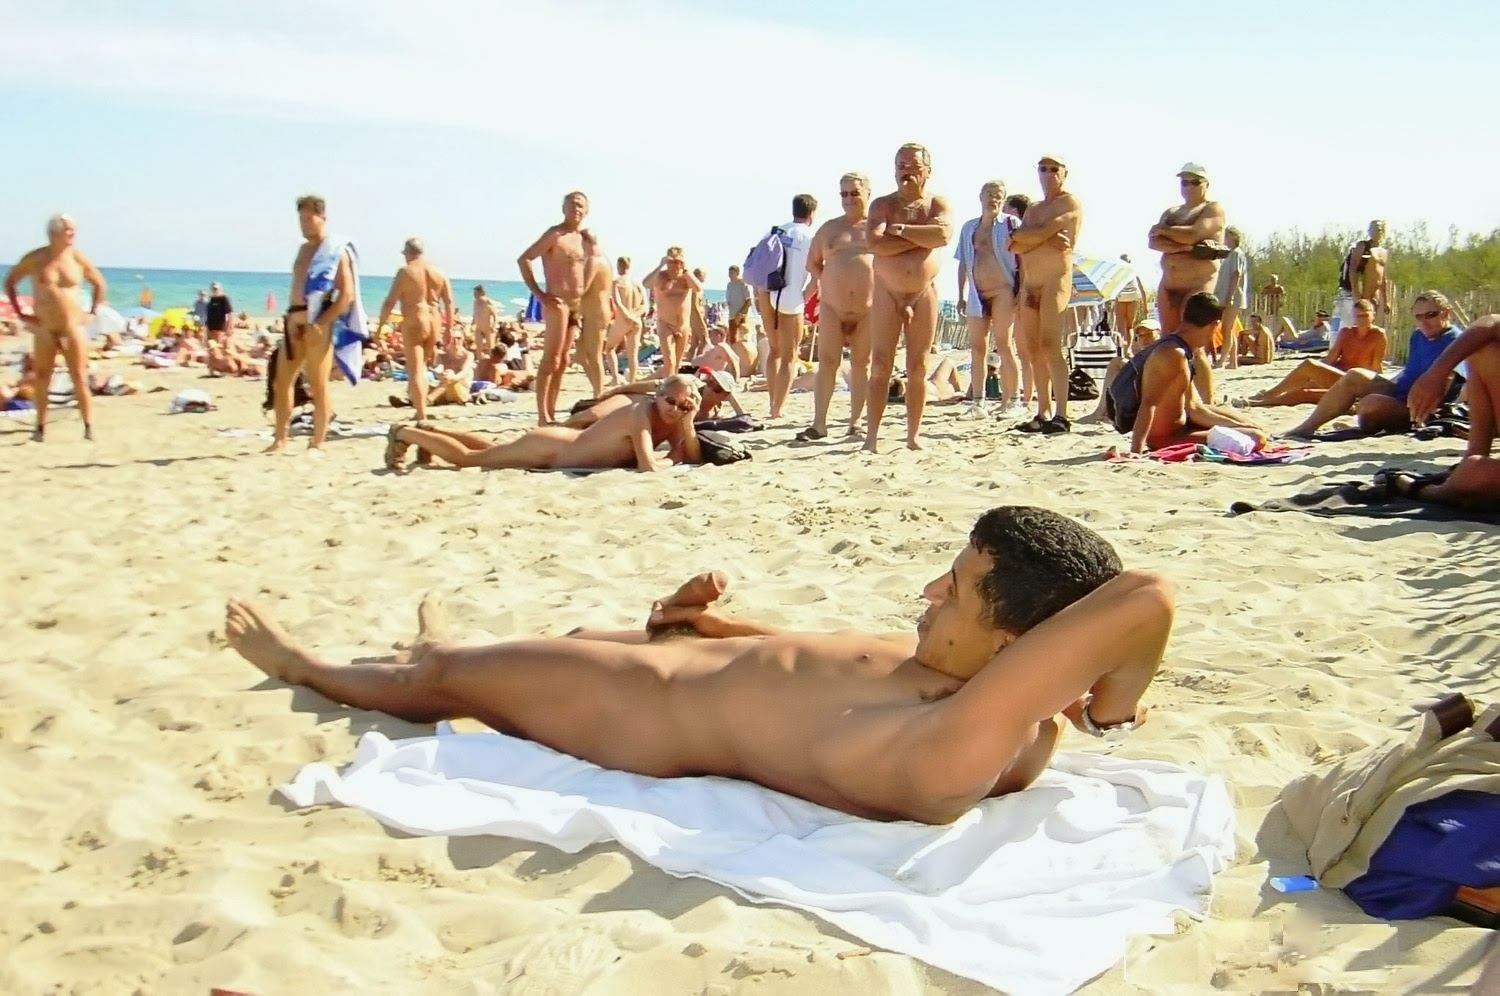 Gay Mans Pleasure Naked Men On The Beach-9227